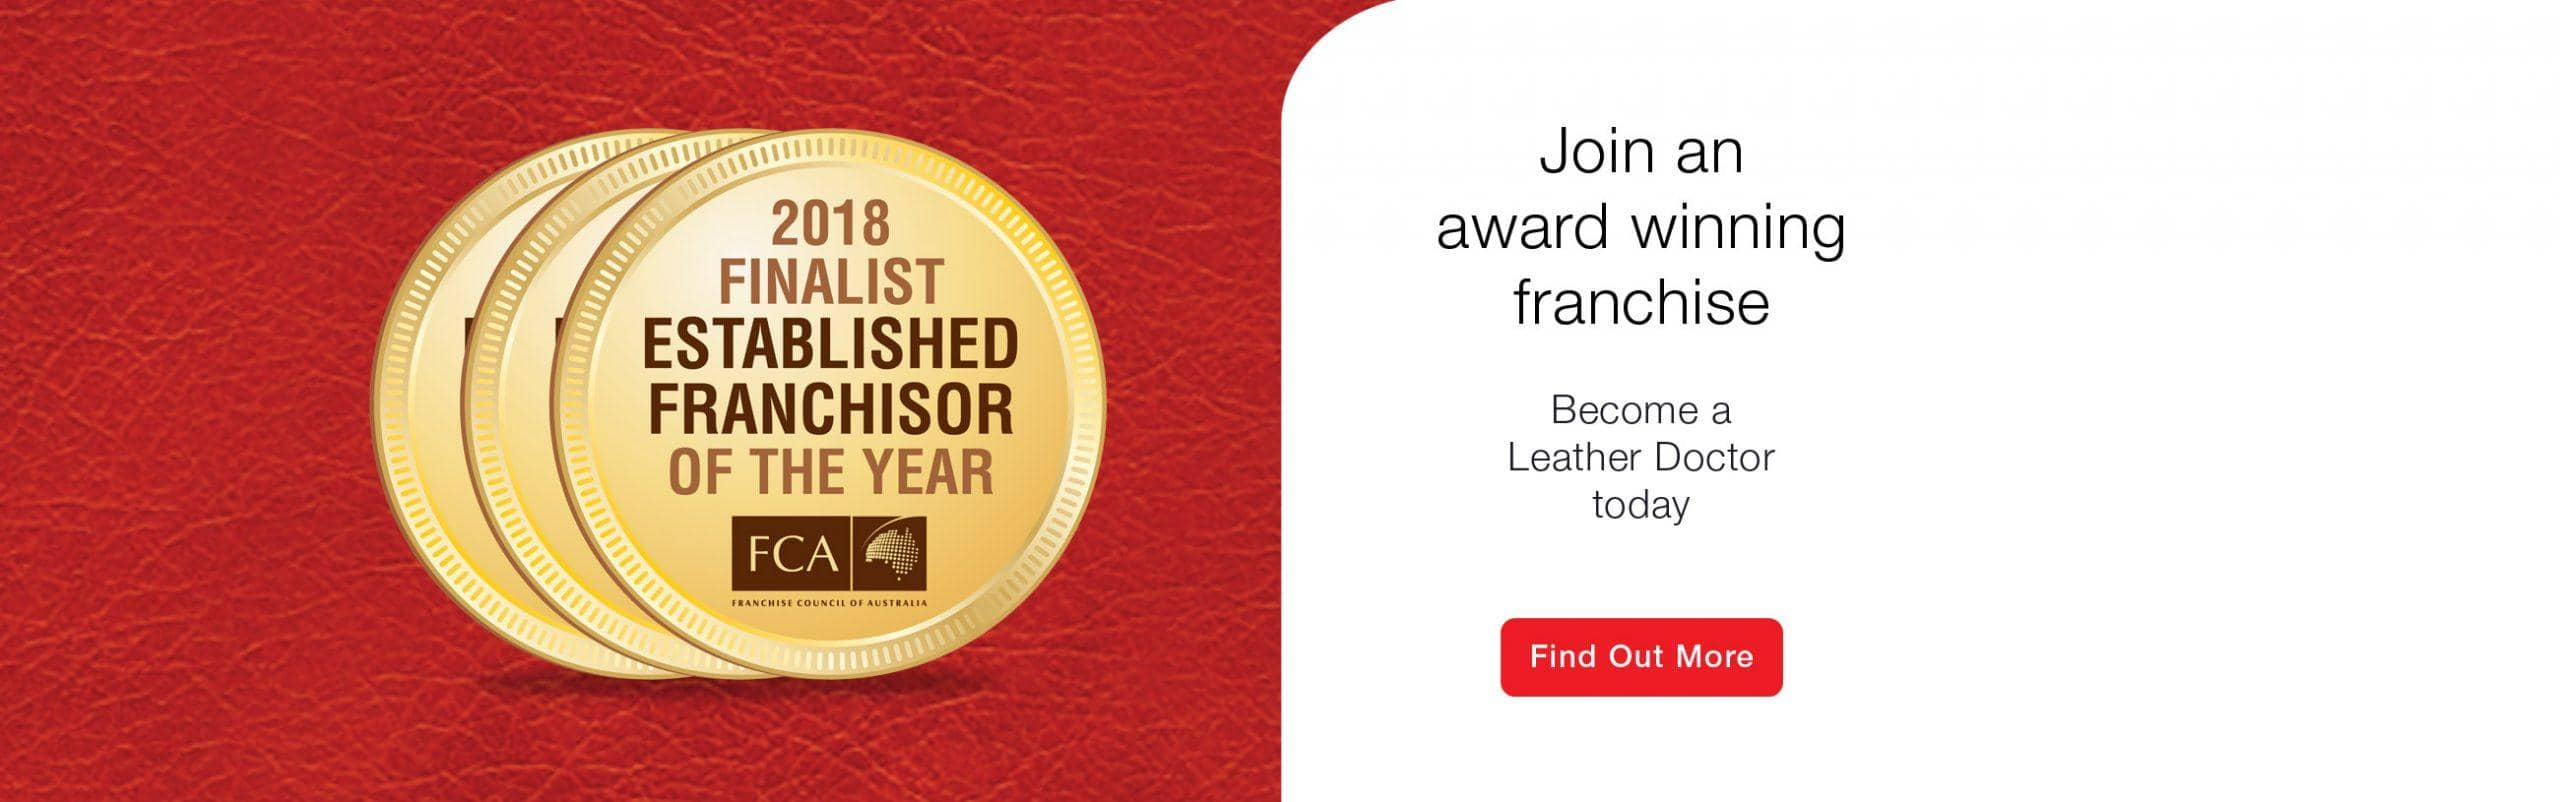 2018 Finalist Established Franchisor Of The Year